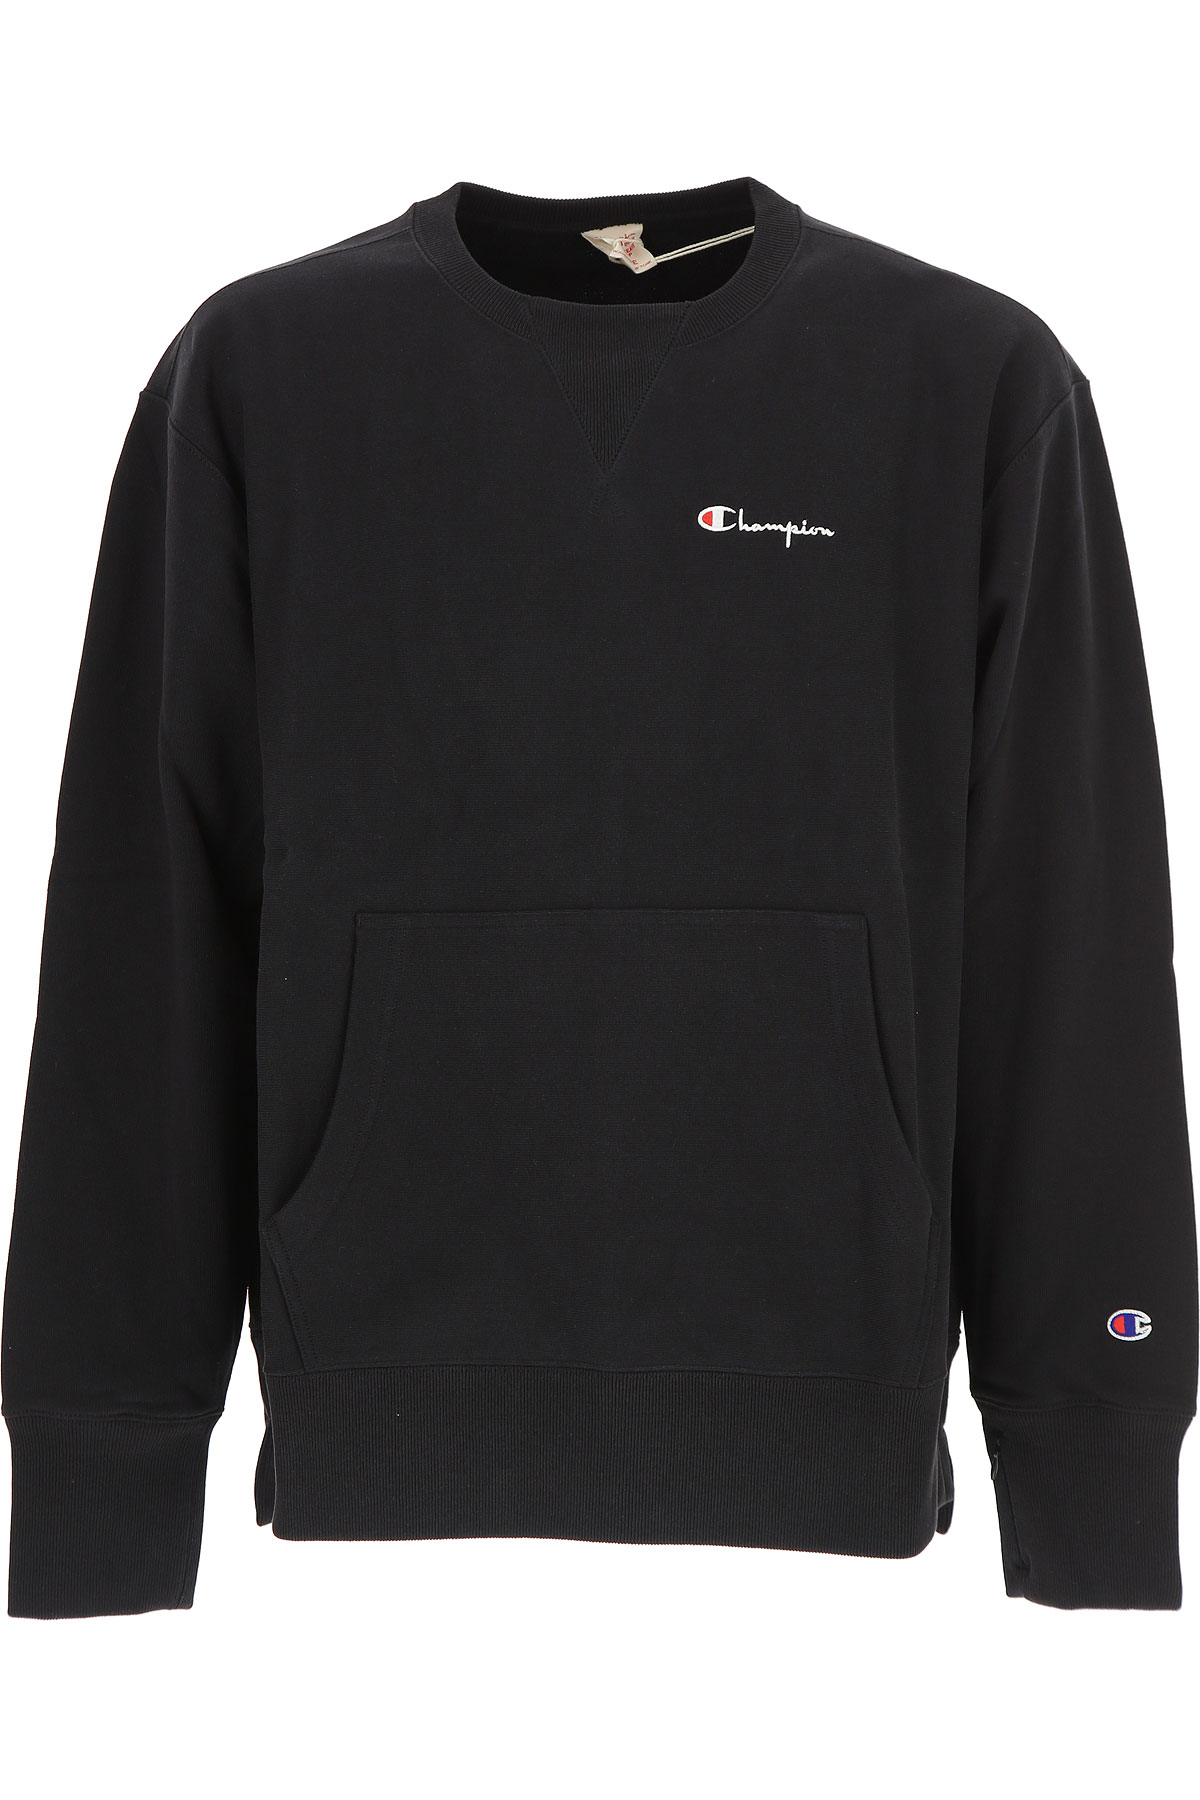 Champion Sweatshirt for Men, Black, Cotton, 2017, L M USA-454876